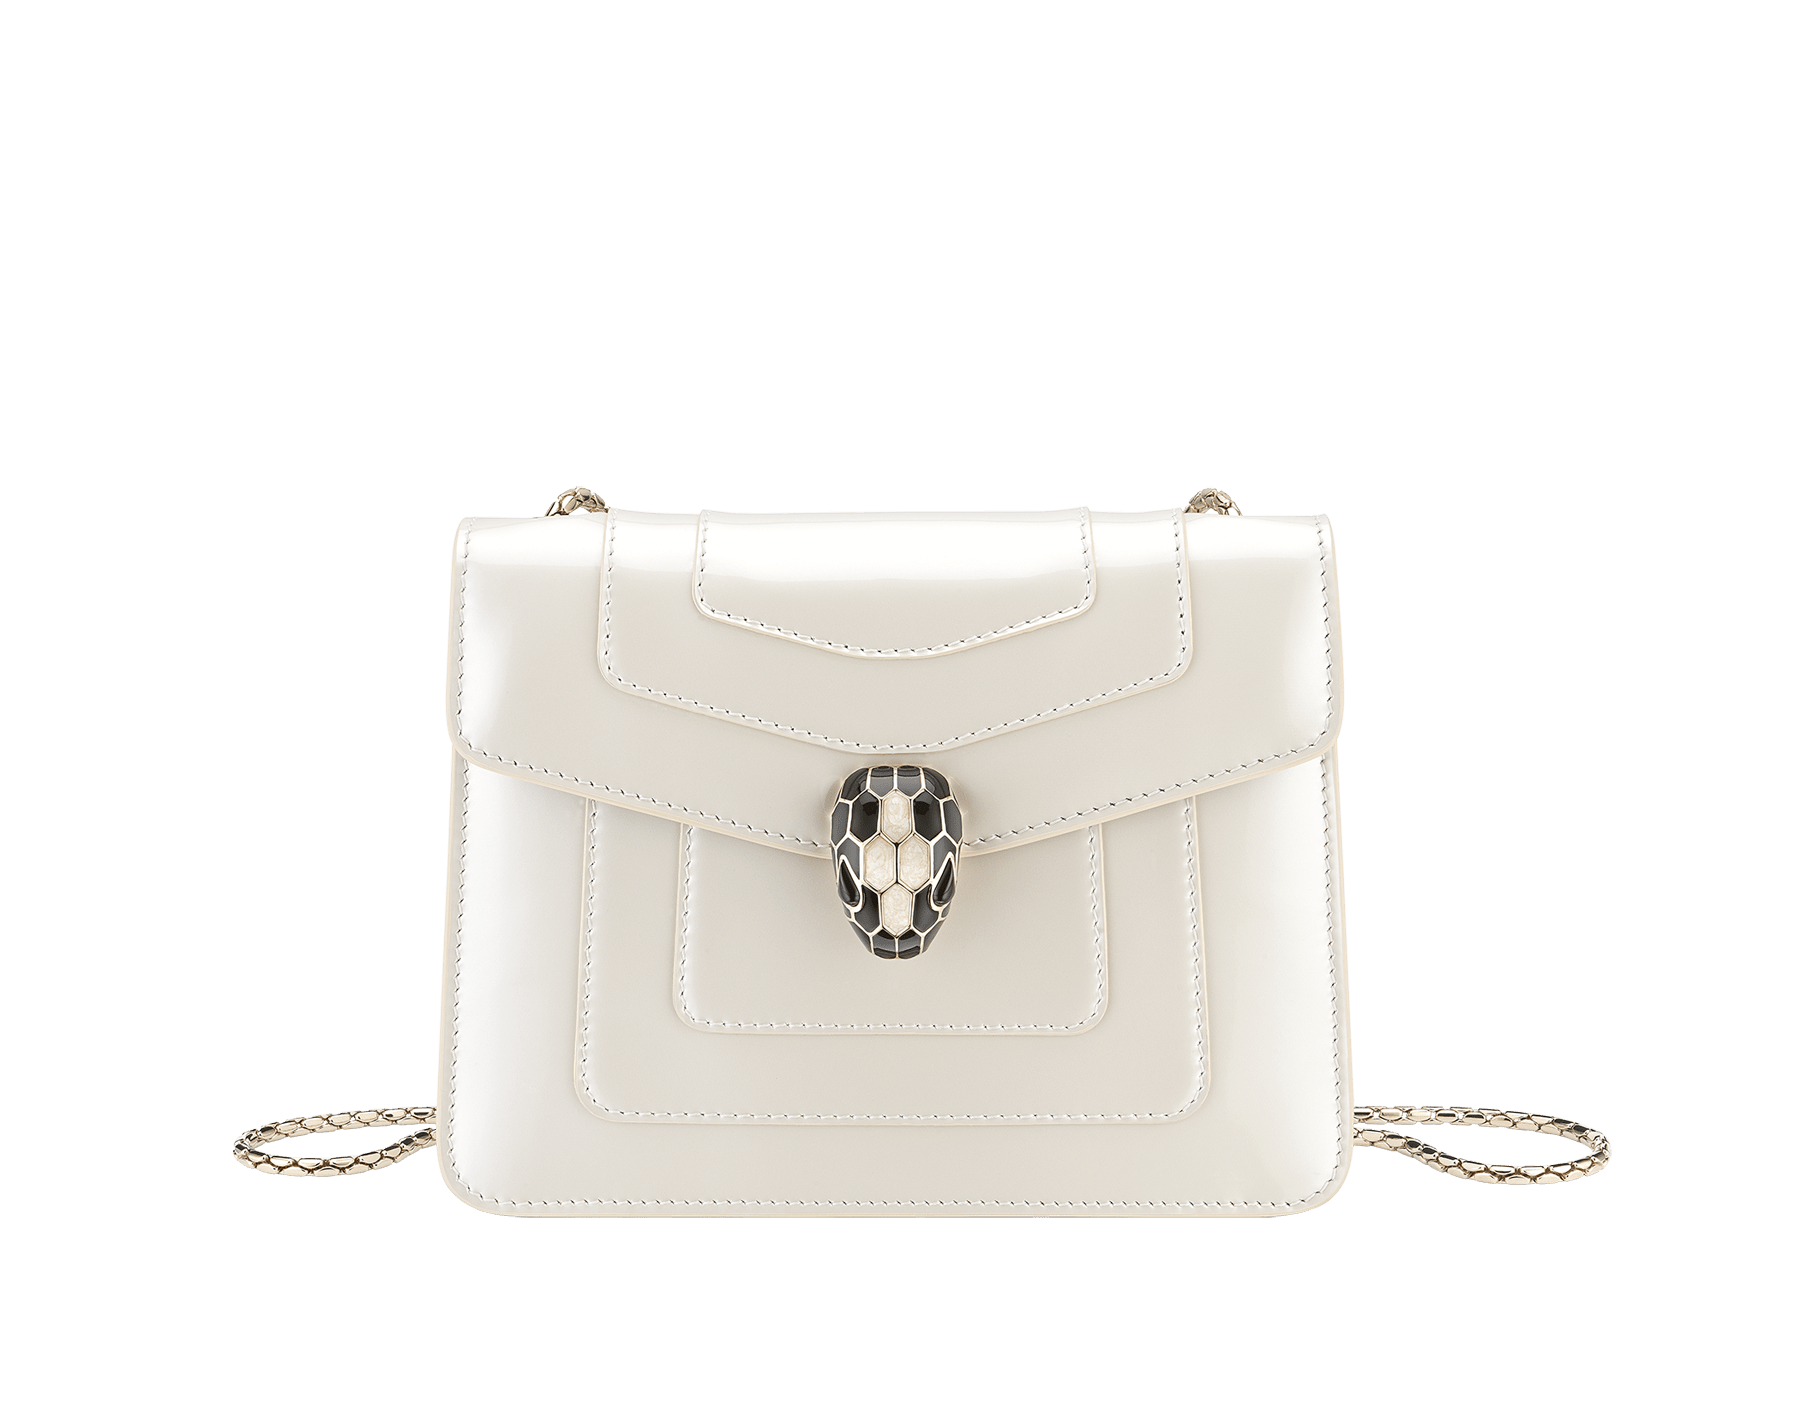 """Serpenti Forever"" crossbody bag in white agate calf leather with a varnished and pearled effect. Iconic snakehead closure in light gold plated brass enriched with black and pearled white agate enamel, and black onyx eyes 289769 image 1"